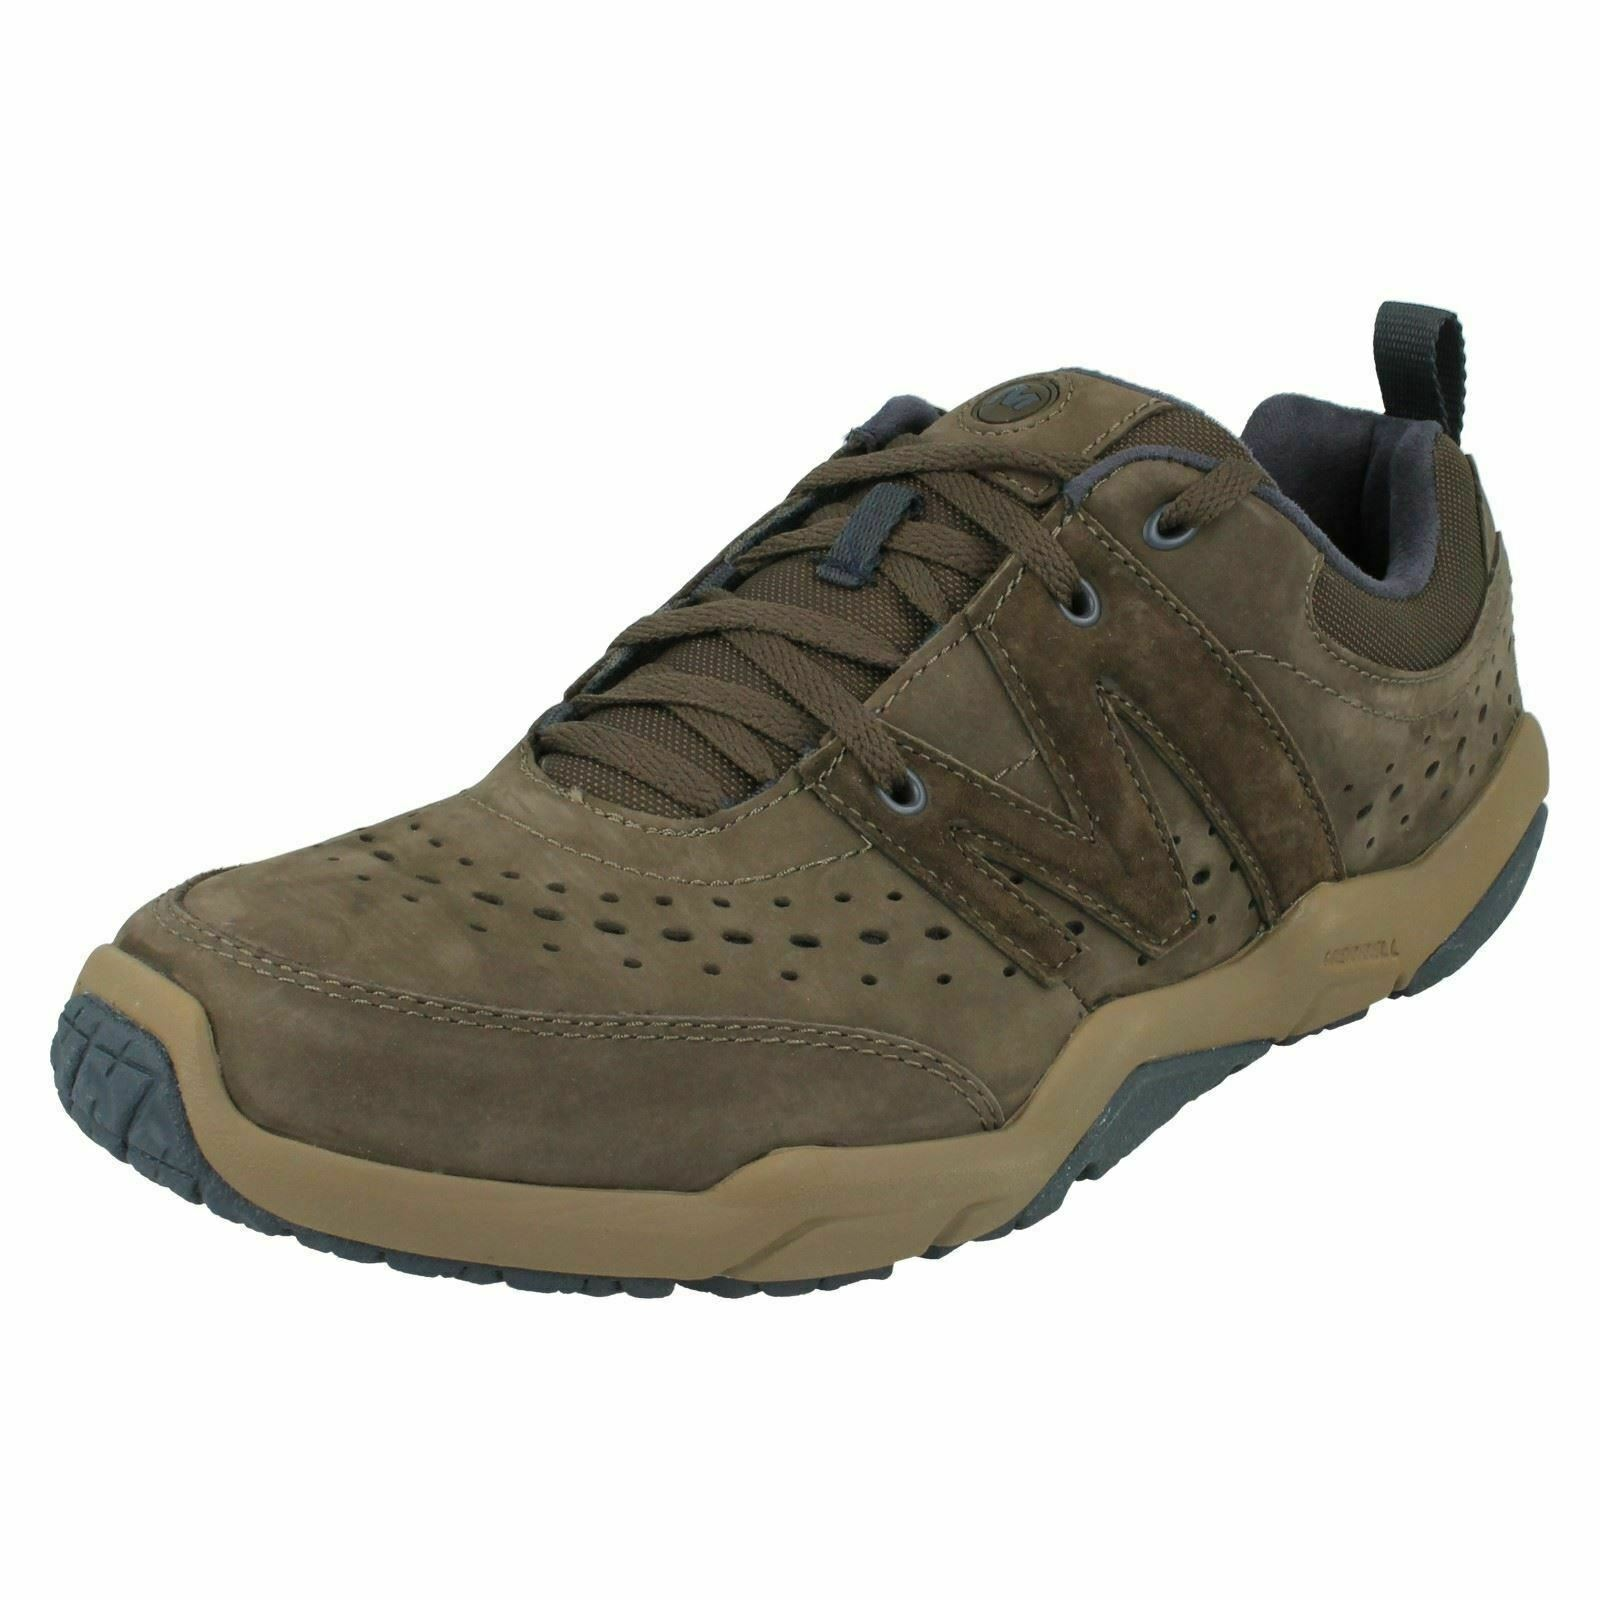 J553251- Mens Merrell Lace Up Trainers- Skylark Leather - Coffee UK7 EU41 US7.5